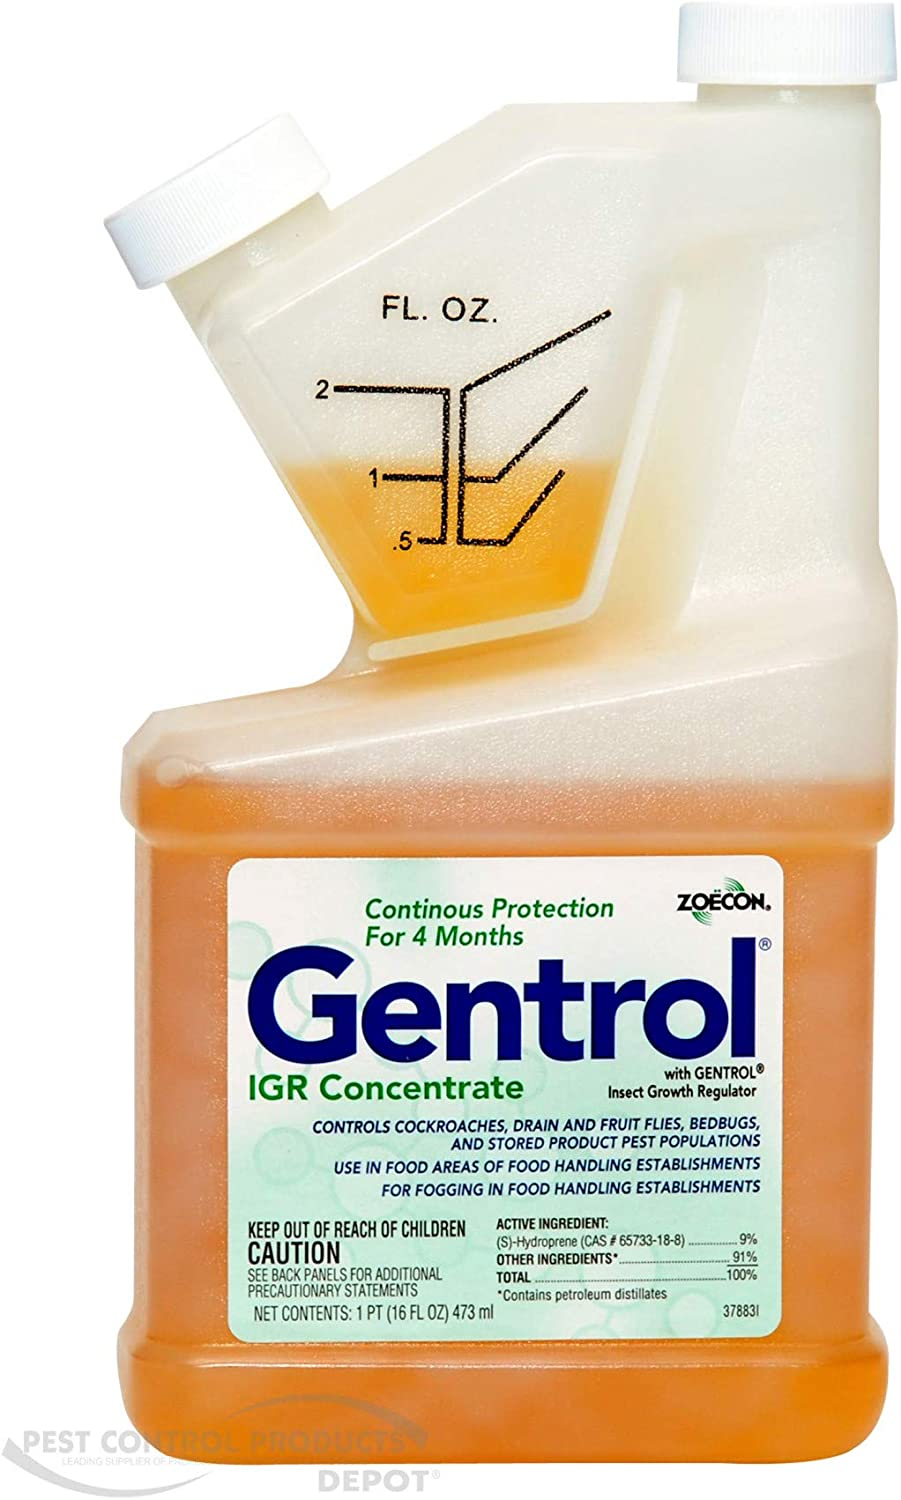 ZOECON 619907 Gentrol IGR Concentrate Insect Growth Regulator, 16 oz